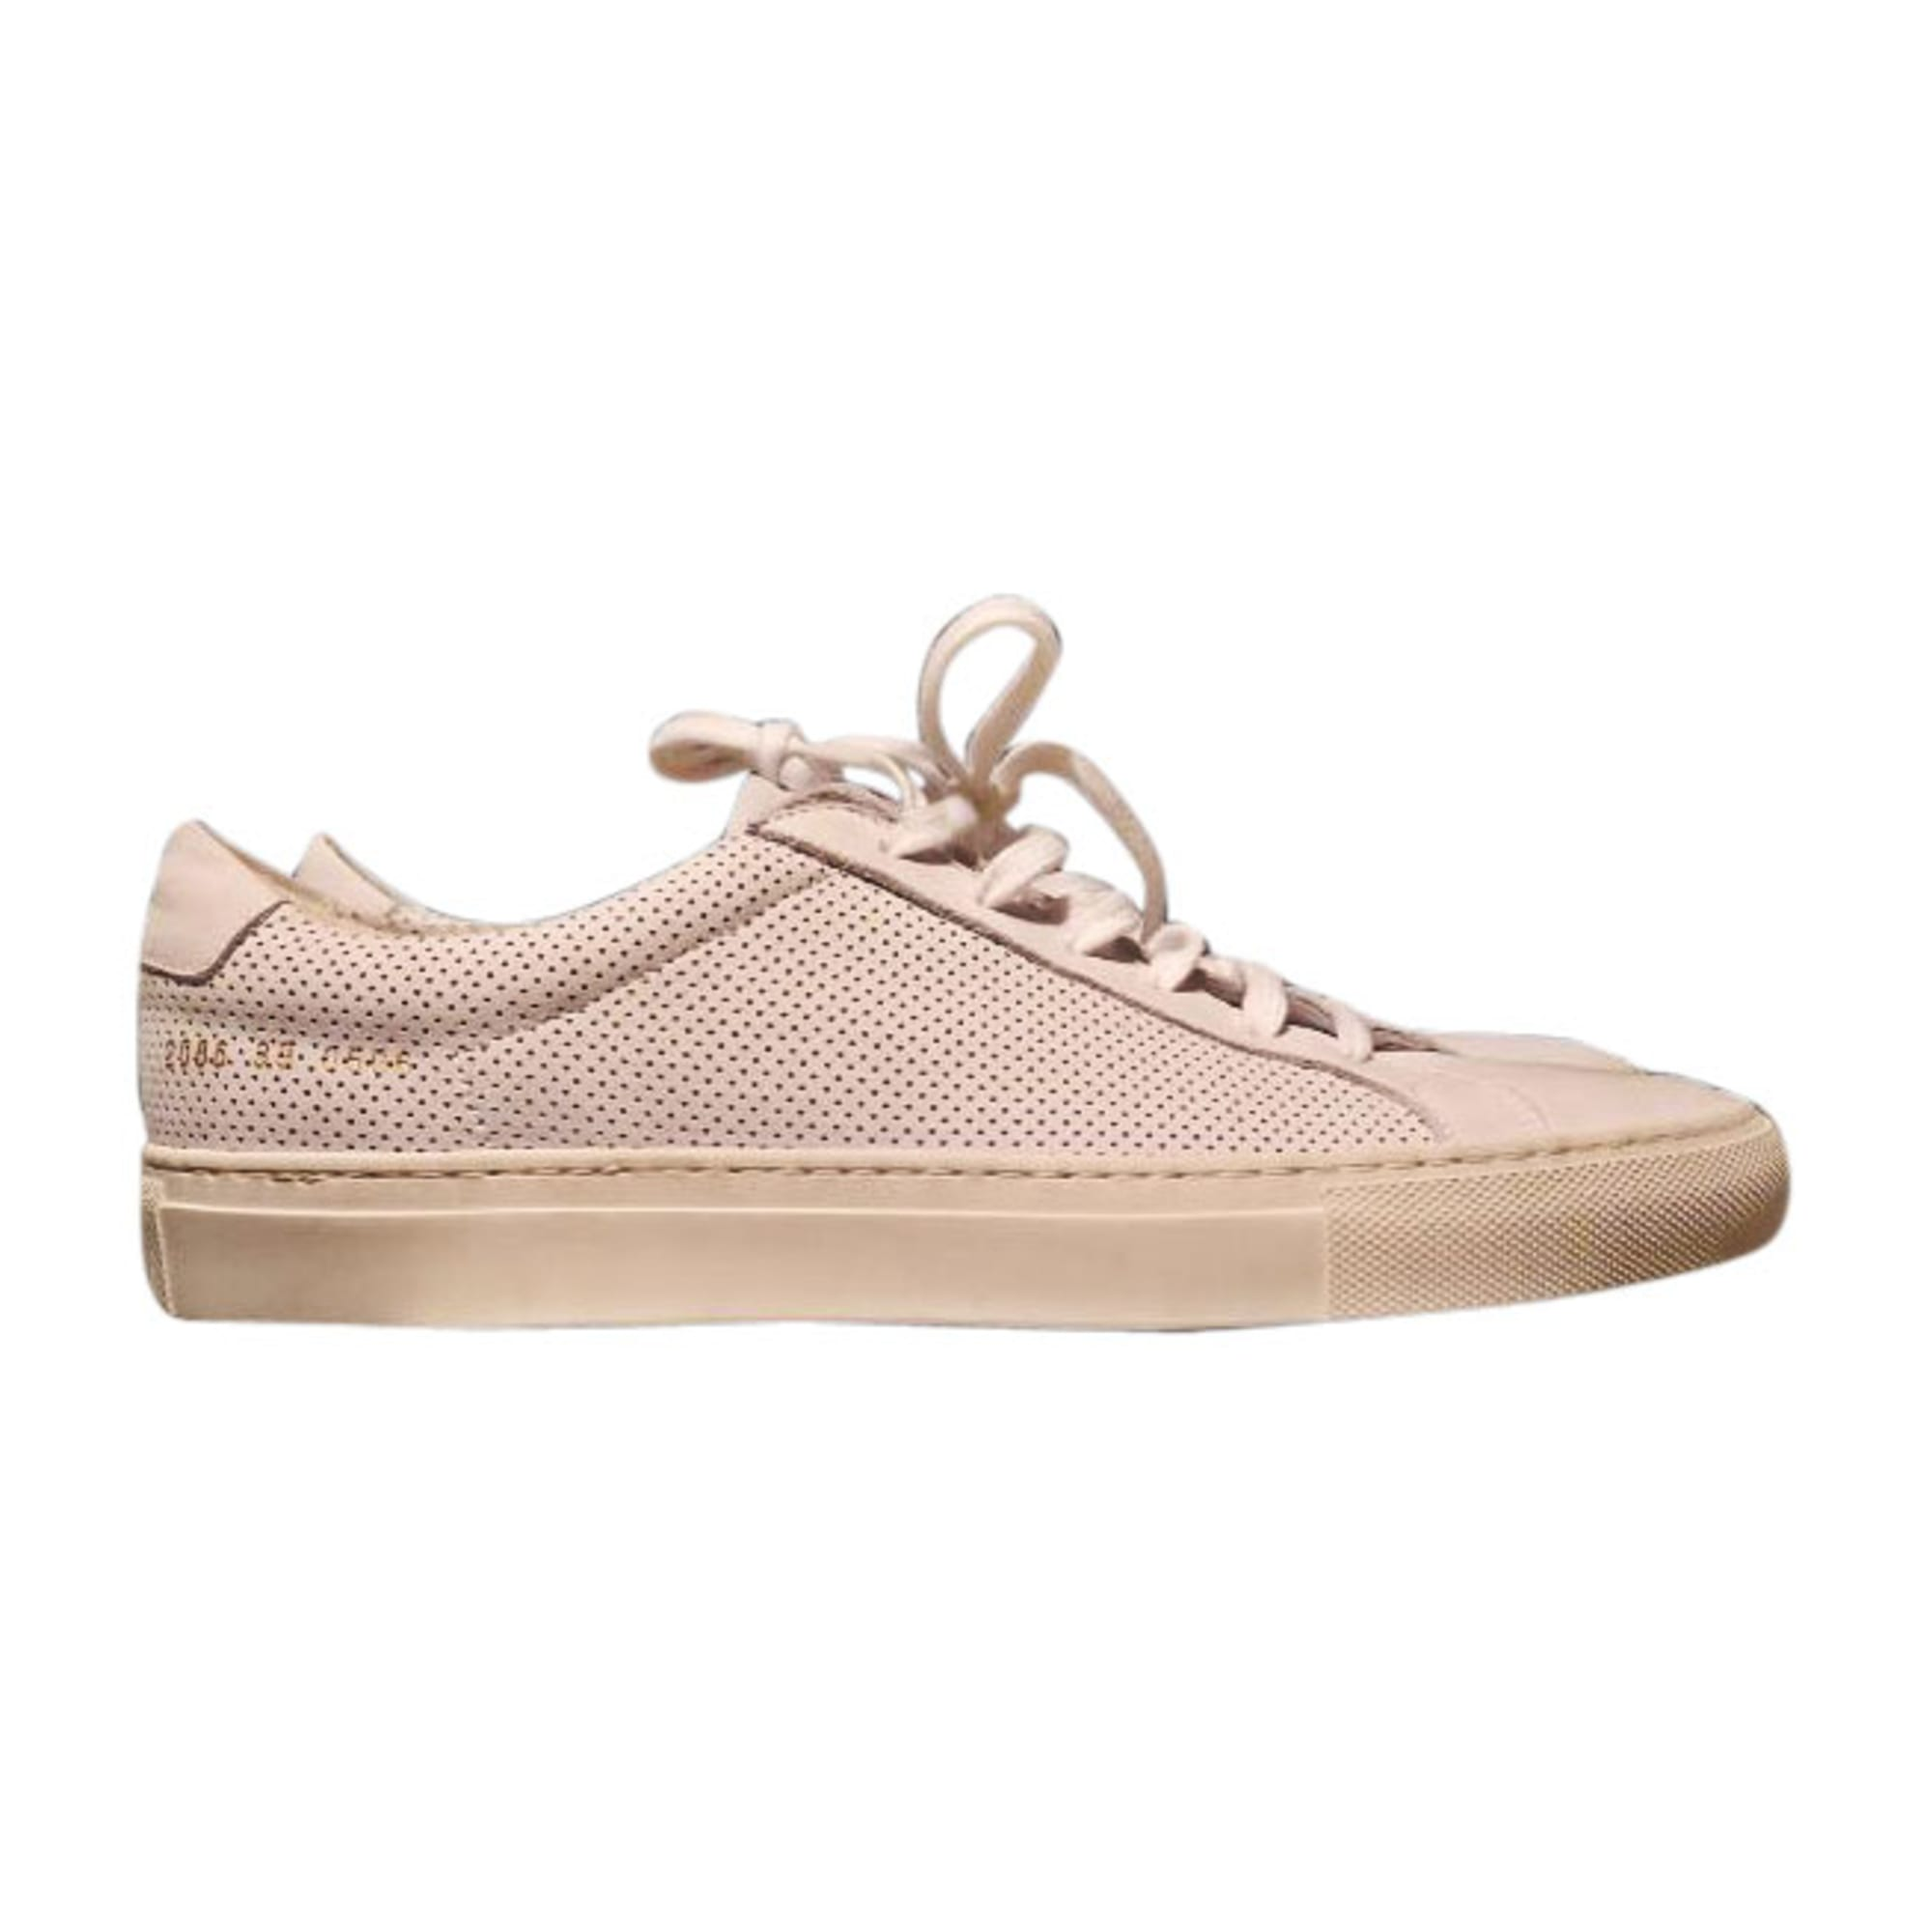 Sneakers COMMON PROJECTS White, off-white, ecru